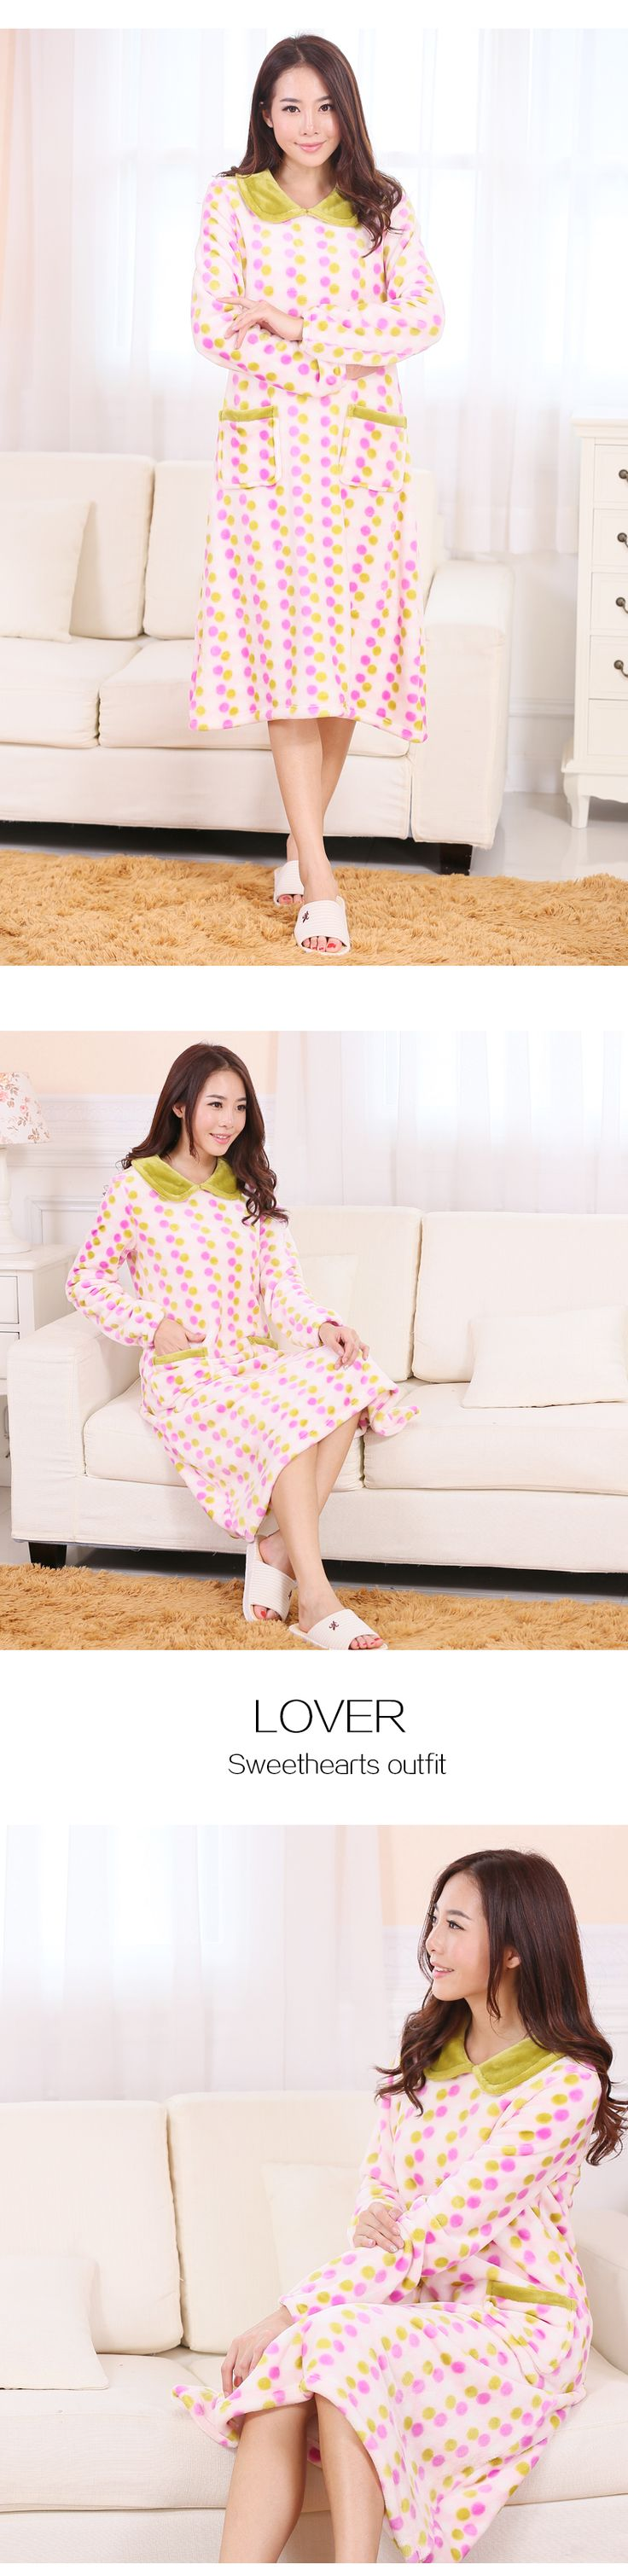 Sexy Nightgown Pink Pijama seda PlusSize Women Sleepwear Casual Nightdress Winter camisolas de dormir ropa de mujer Freeshipping-inNightgowns & Sleepshirts from Women's Clothing & Accessories on Aliexpress.com | Alibaba Group